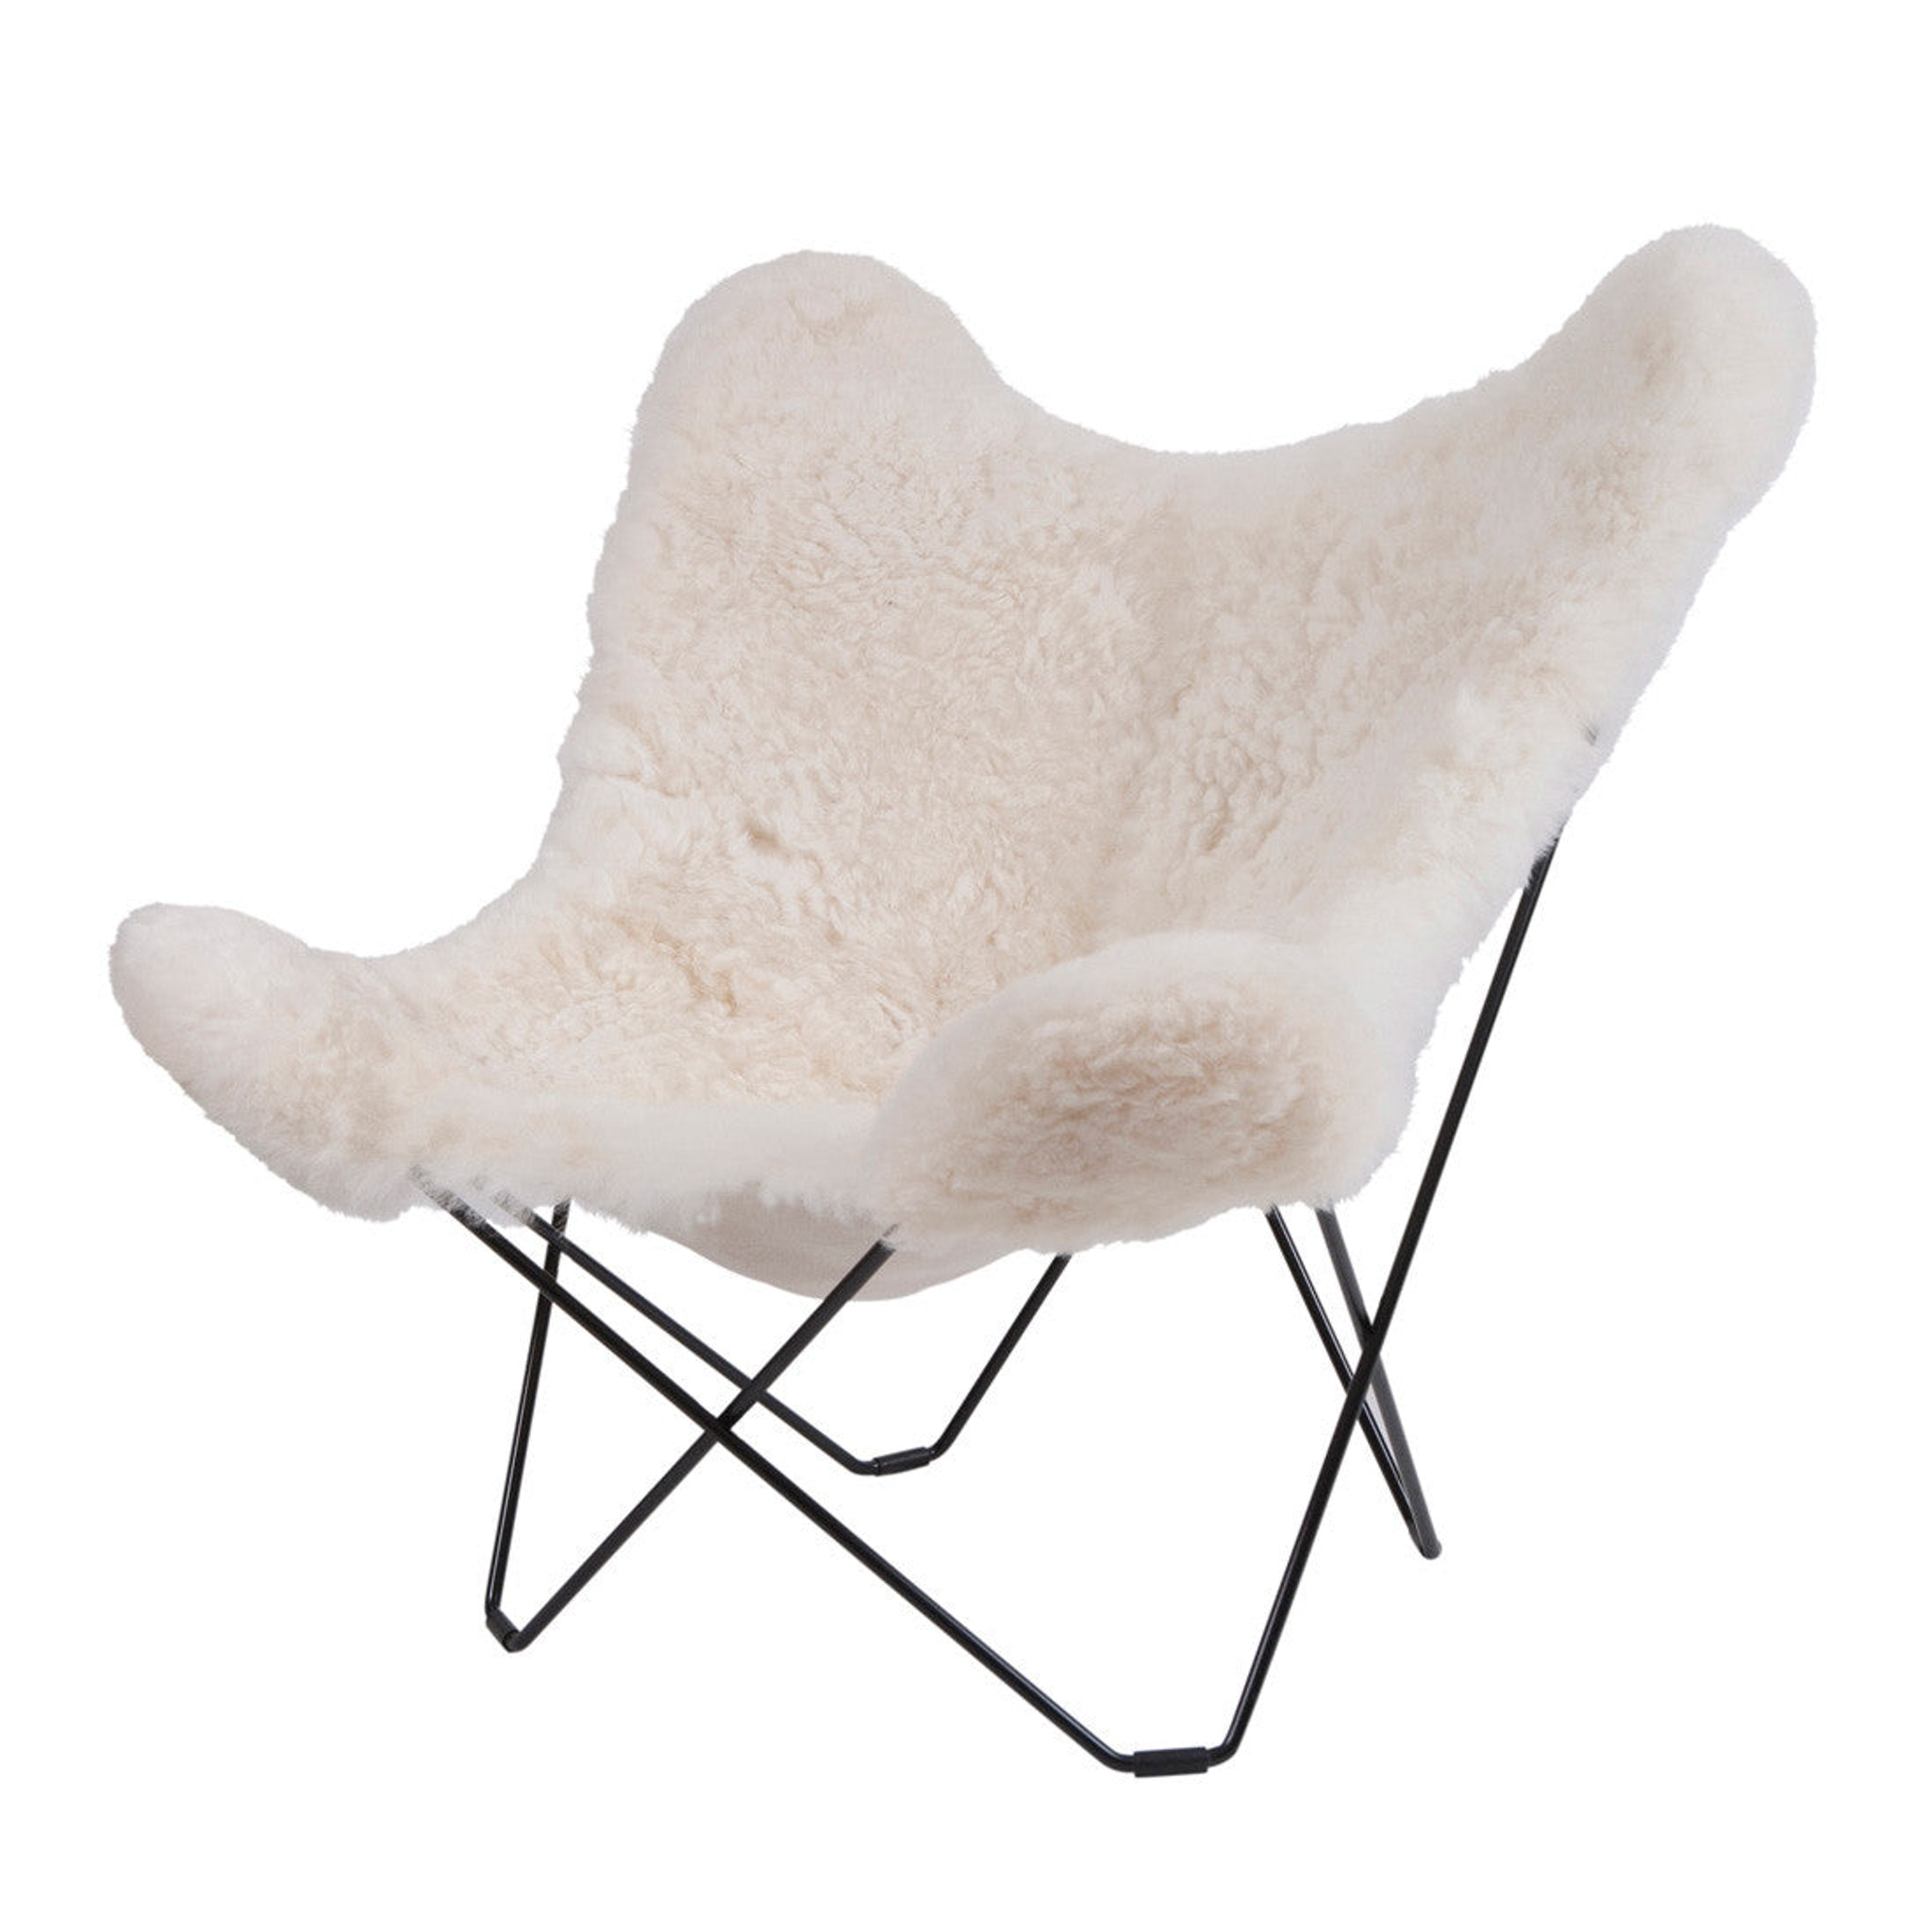 Mariposa Butterfly Lambskin Chair by Bonet, Kurchan and Ferarri Hardoy